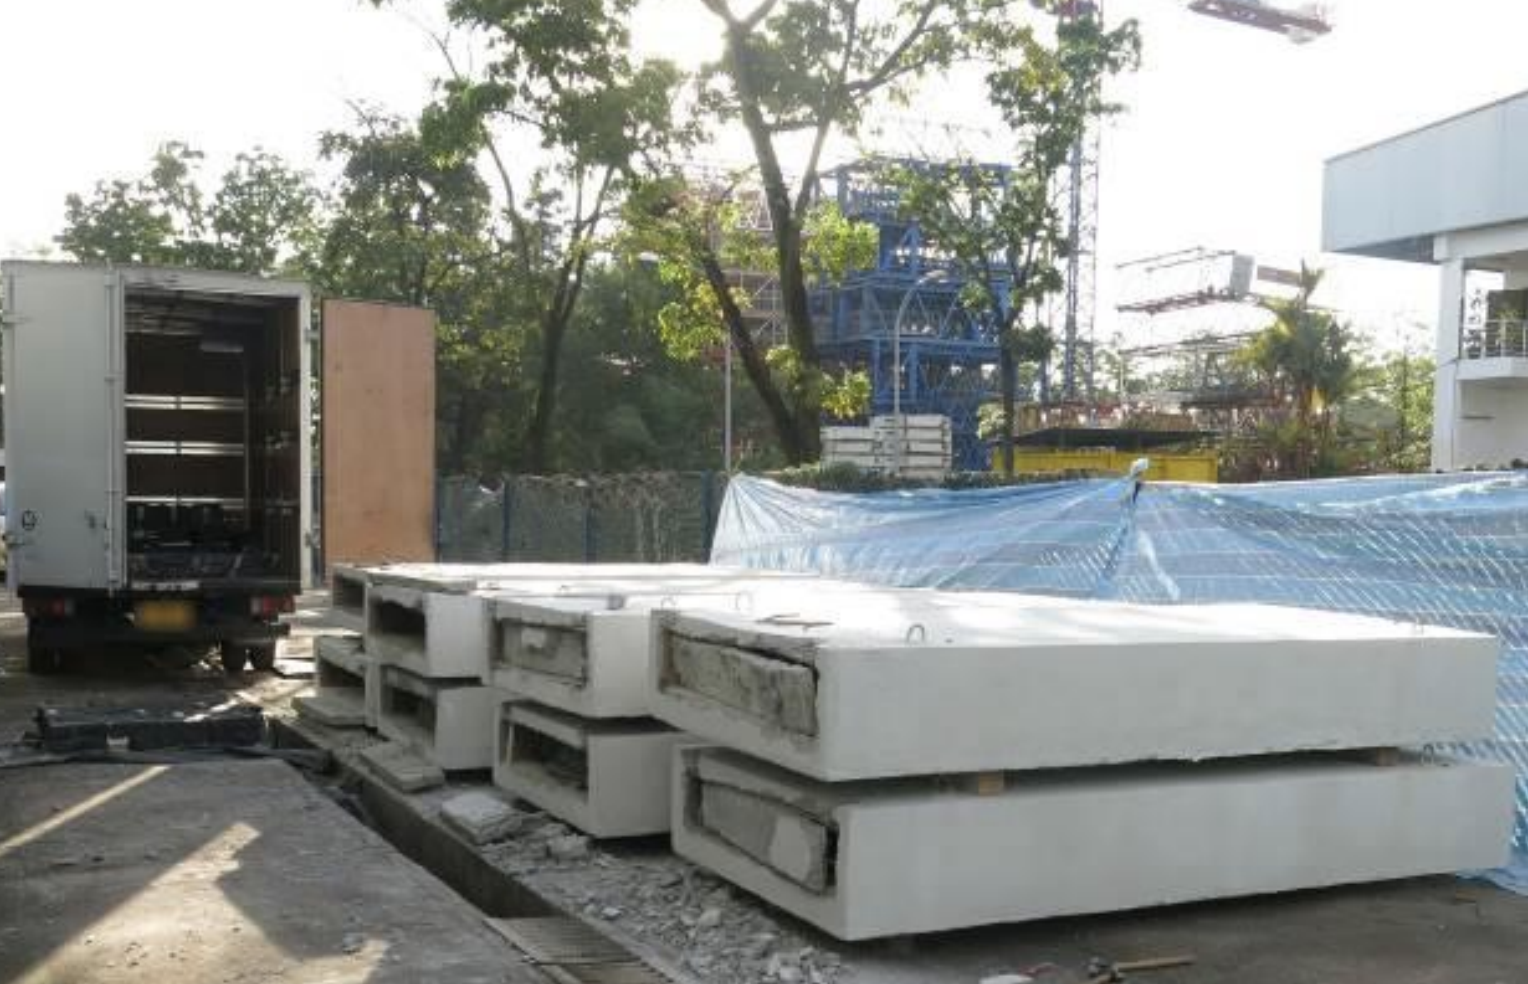 Singapore Customs officers raided a yard in Tuas Avenue 14 on 24 November 2018 and arrested four men who were retrieving duty-unpaid cigarettes that were hidden in concrete slabs and loading them onto a lorry. Photo courtesy: Singapore Customs